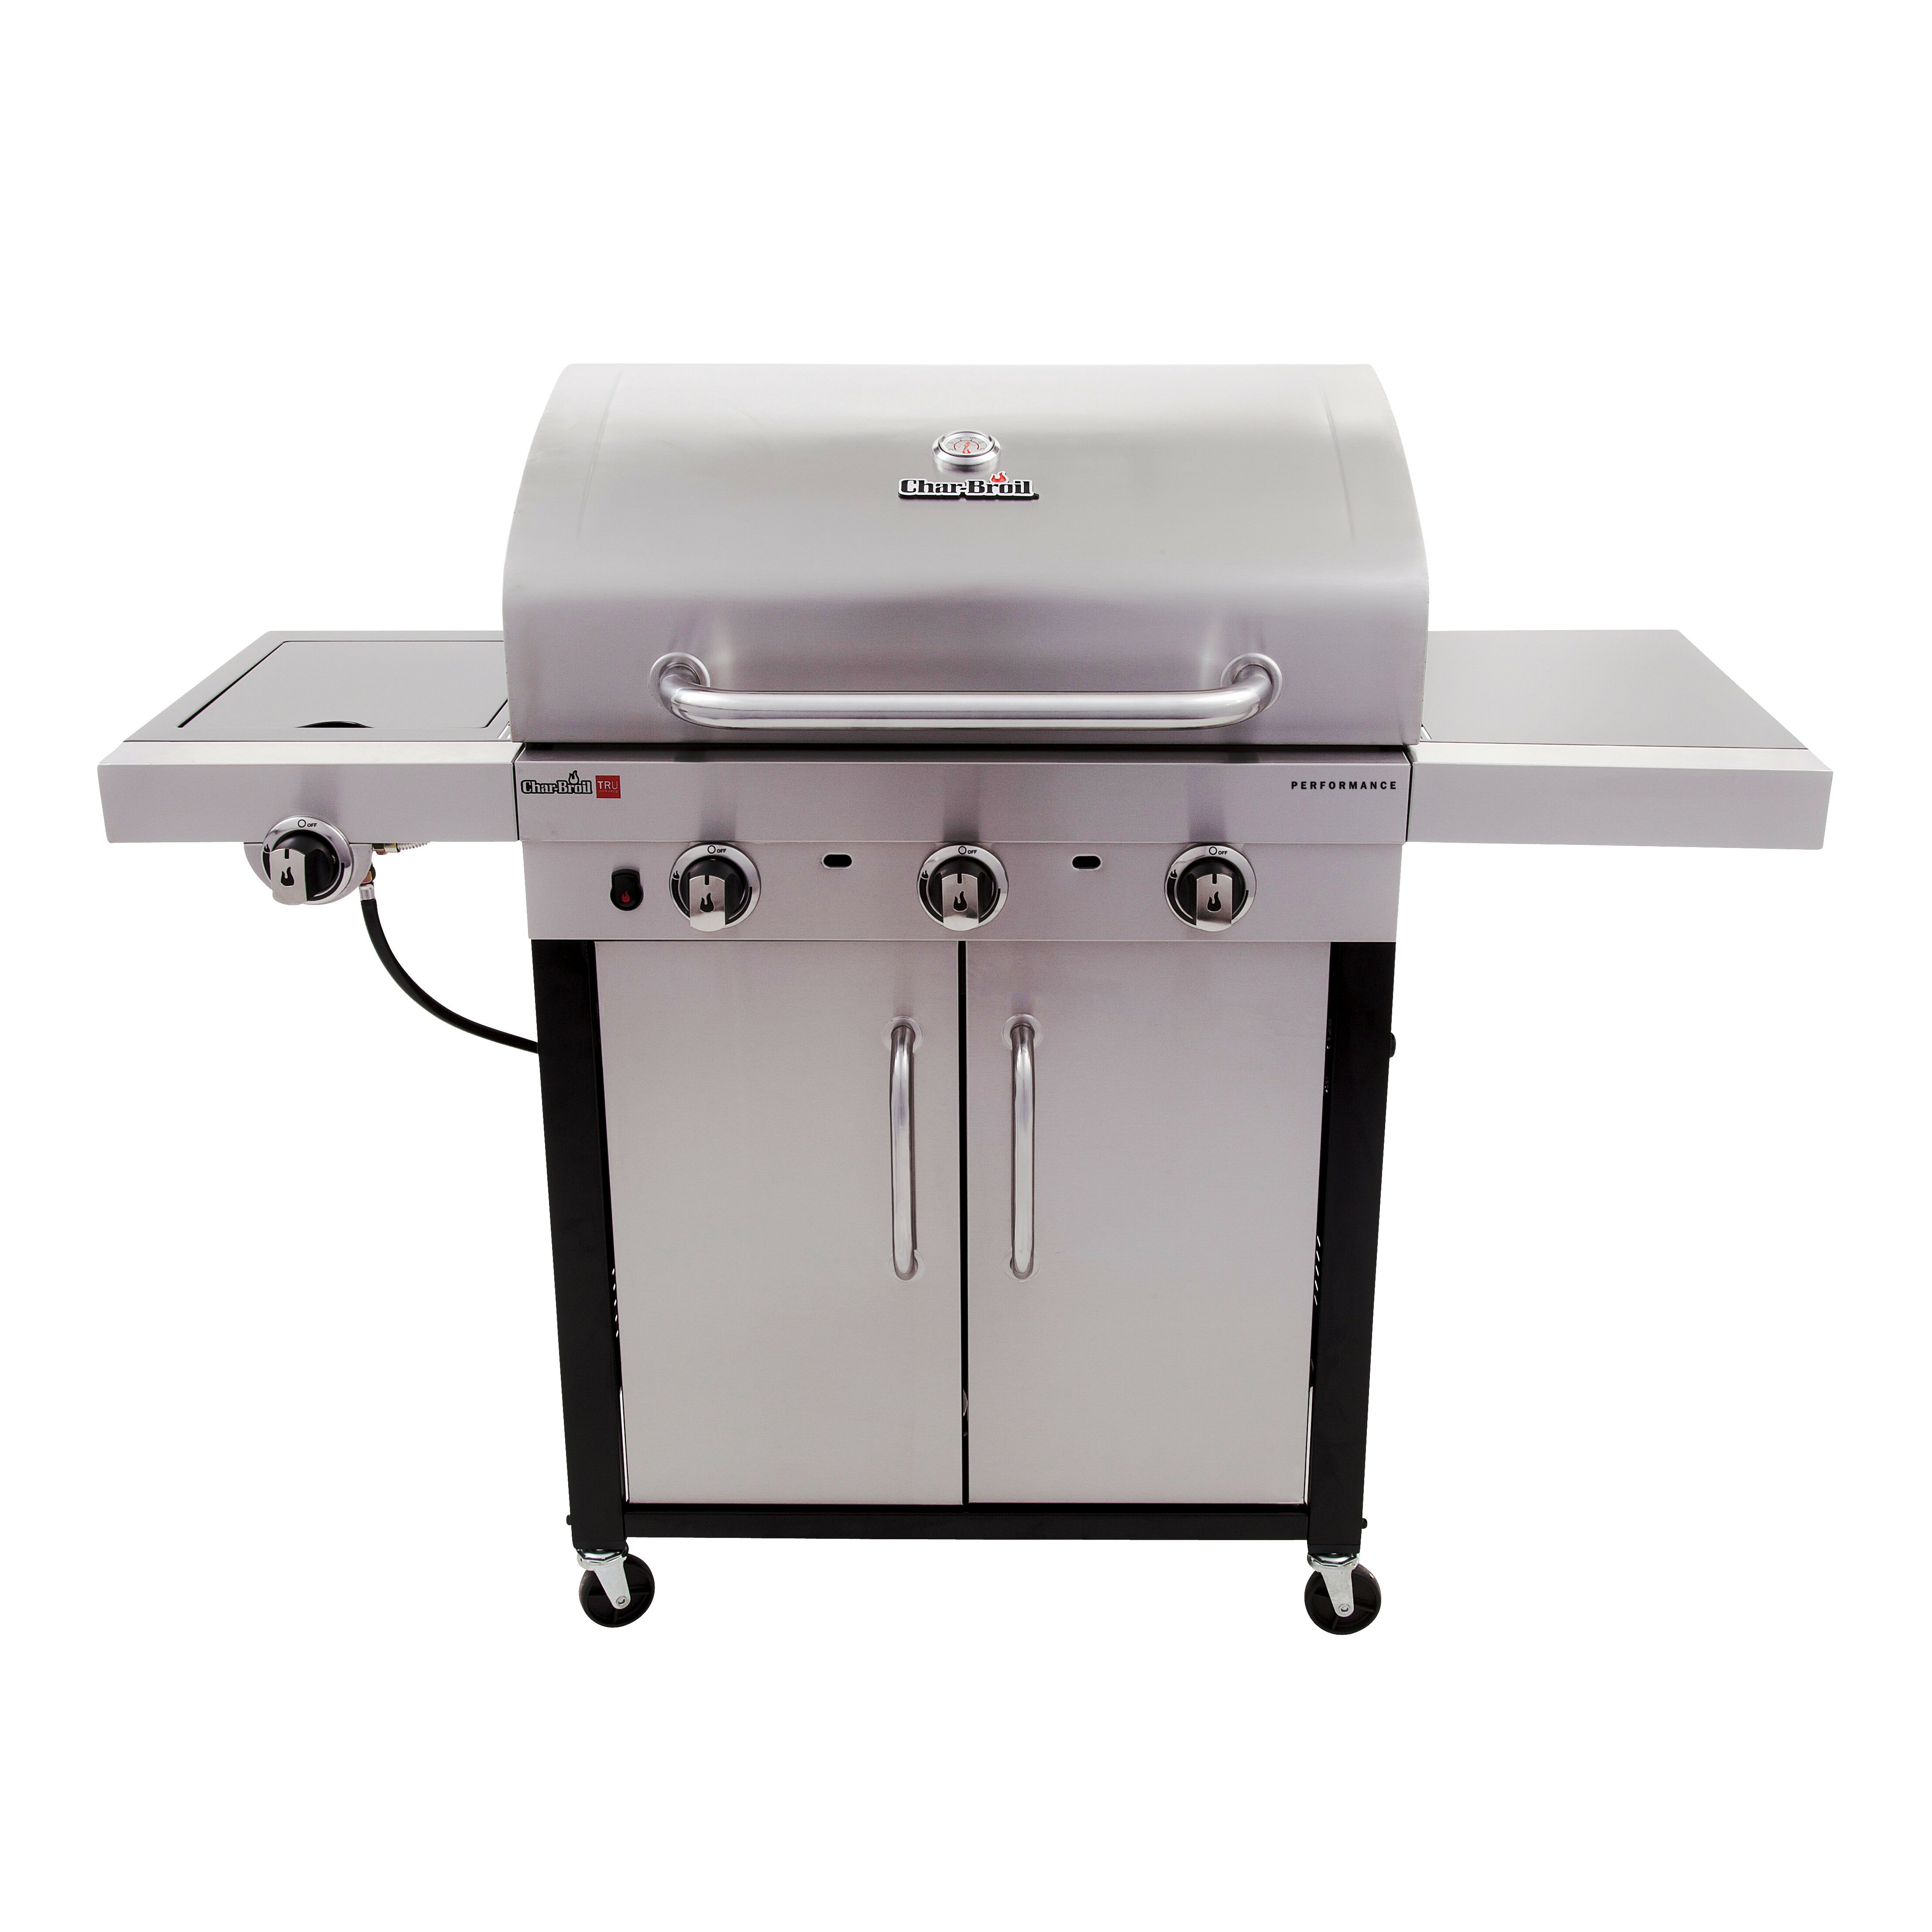 Sides On The Grill: CharBroil Performance Gas Grill With Side Burner & Reviews